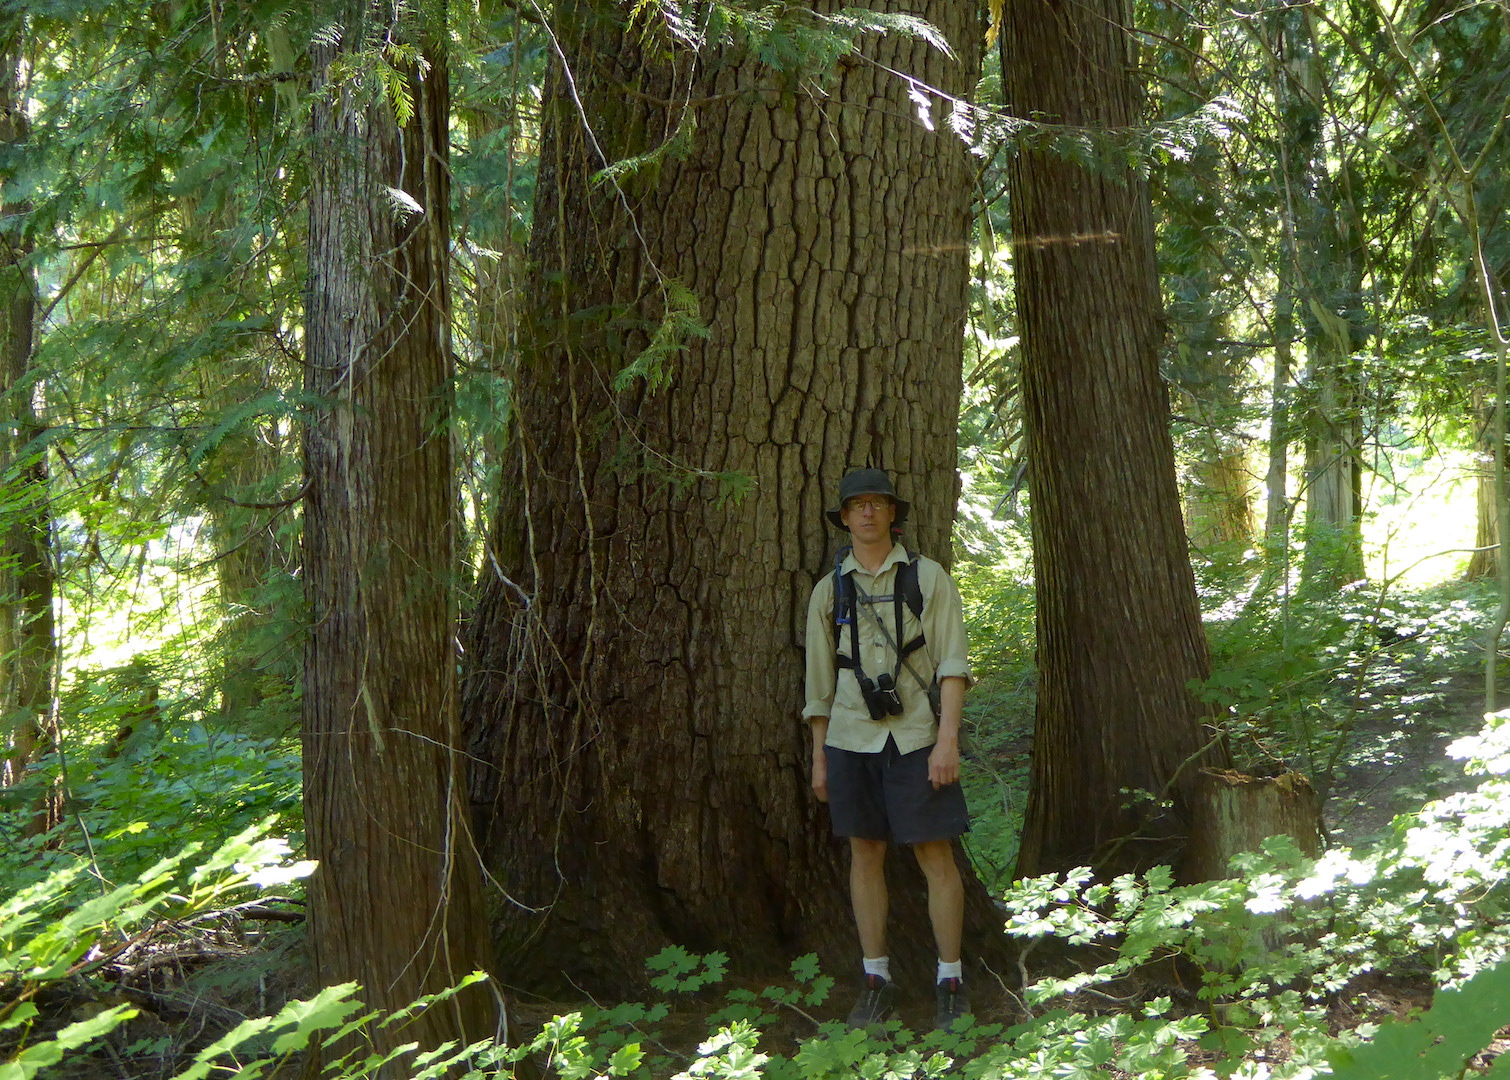 person standing next to large tree with smaller trees nearby